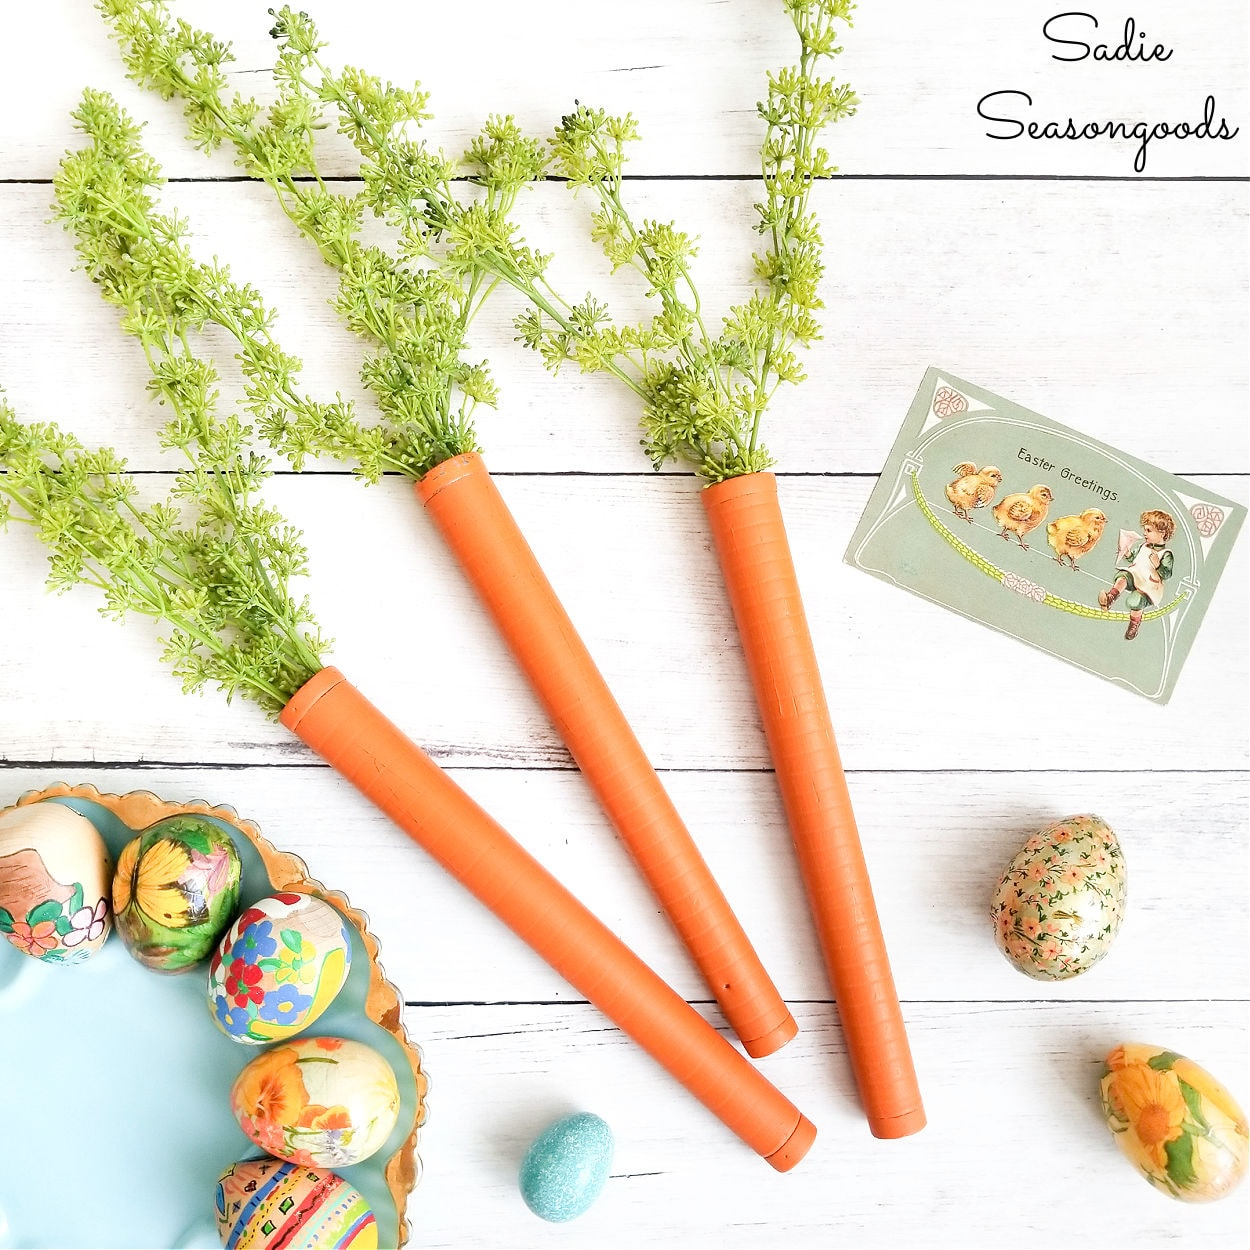 Decorative Carrots from Vintage Bobbins